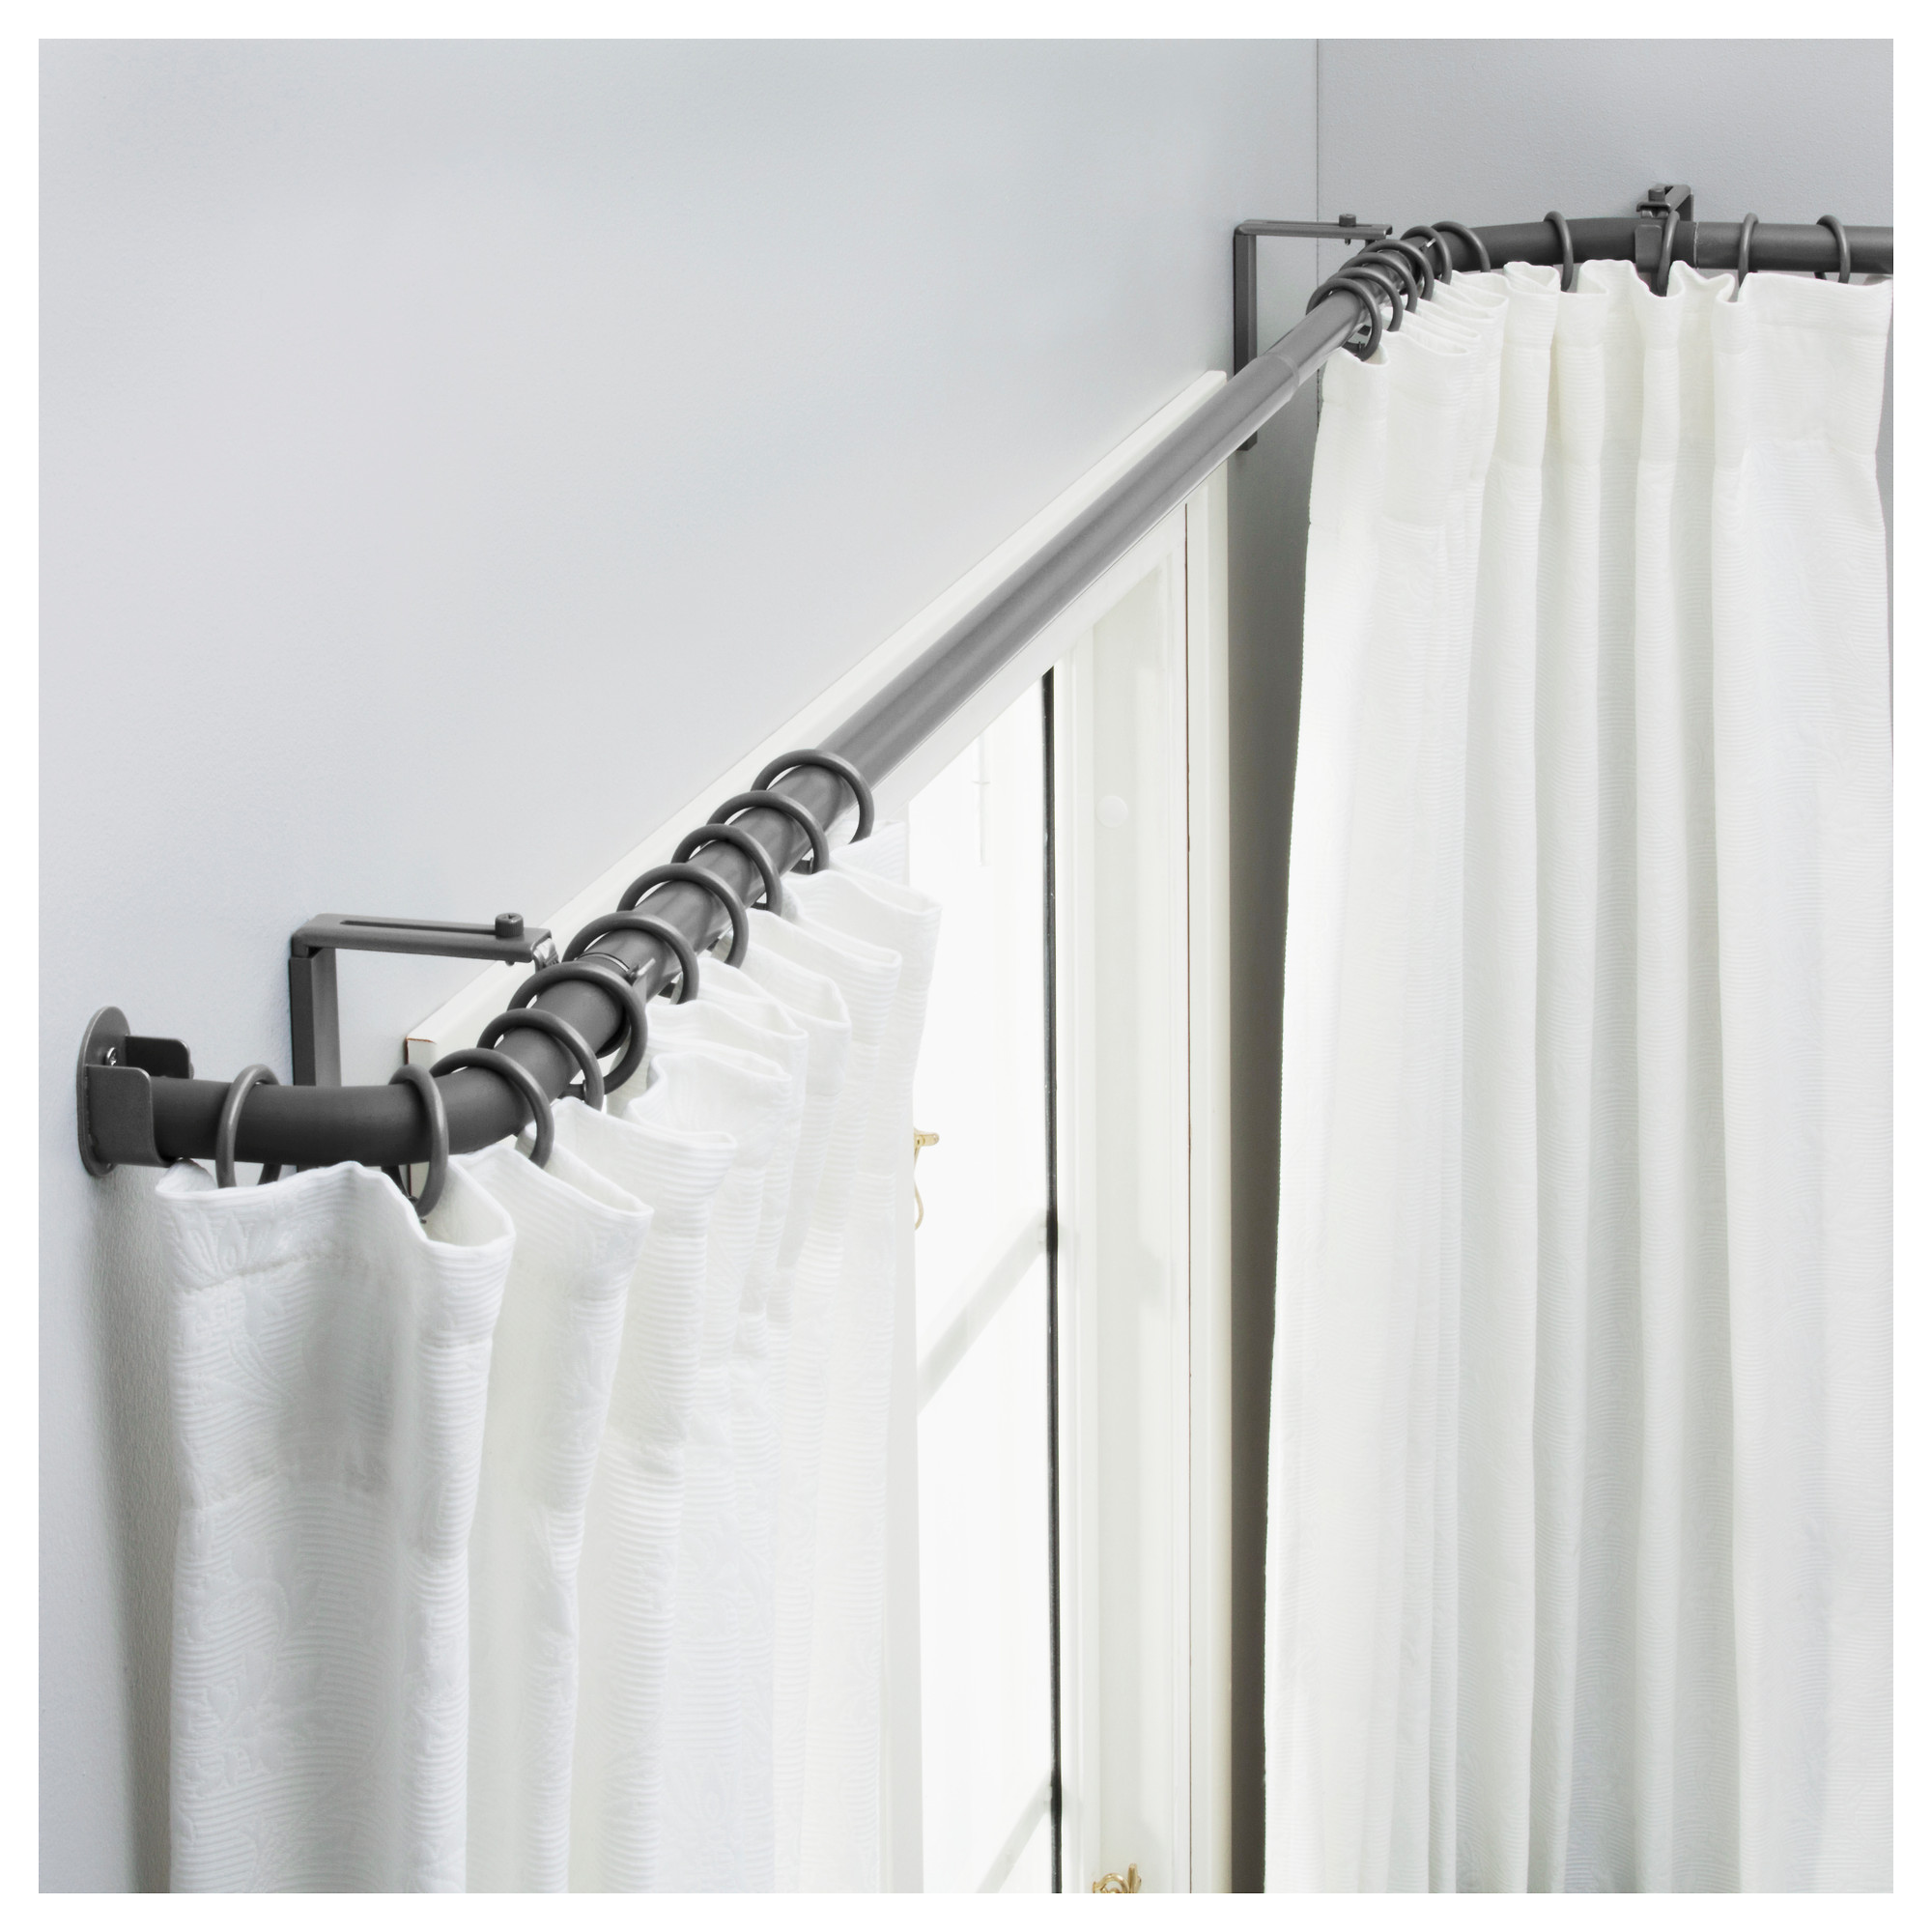 Attractive ikea curtain rods for home decor ideas with ikea double curtain rod and ceiling curtain rods ikea